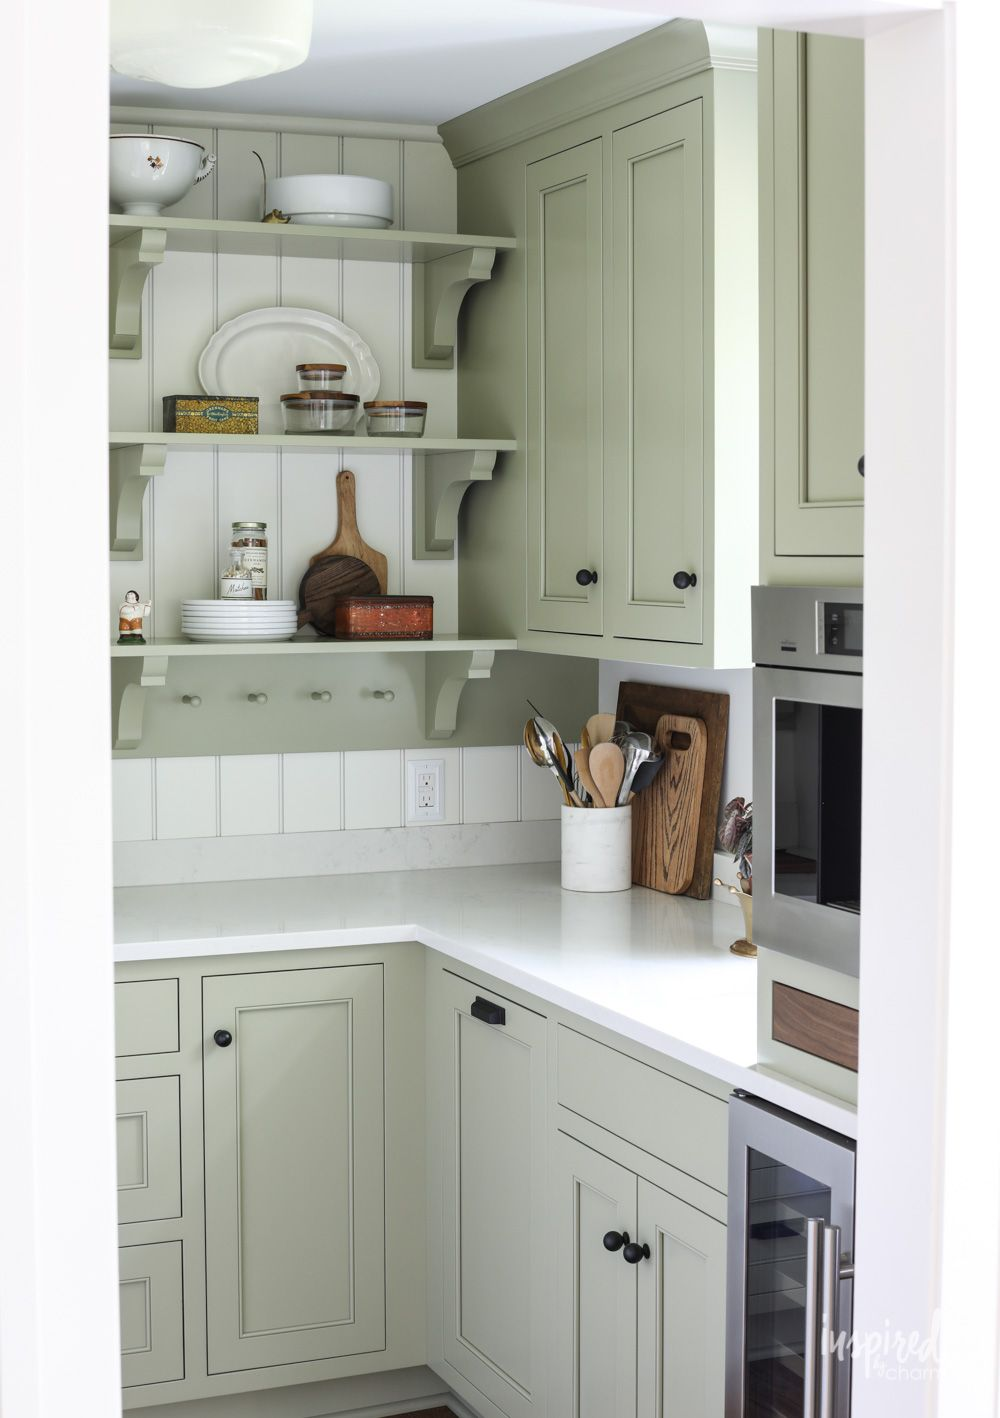 Bayberry Kitchen Remodel Reveal - Inspired by Charm ...